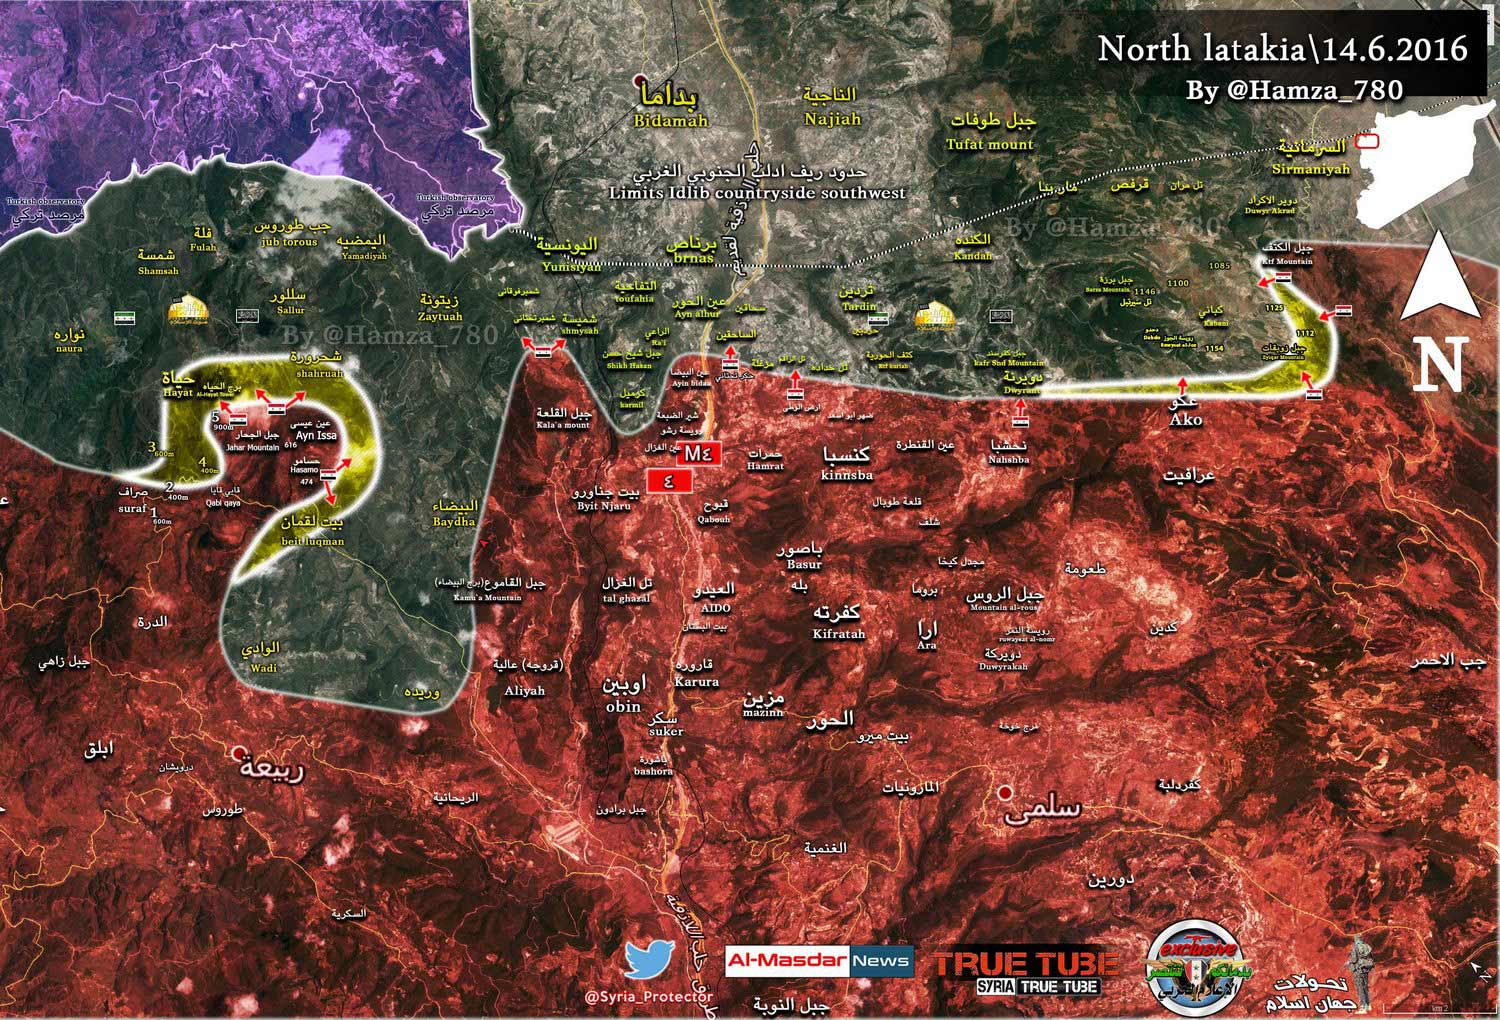 http://warsonline.info/images/stories/news/16/06jun/syria/latakia/latakia14jun16.jpg